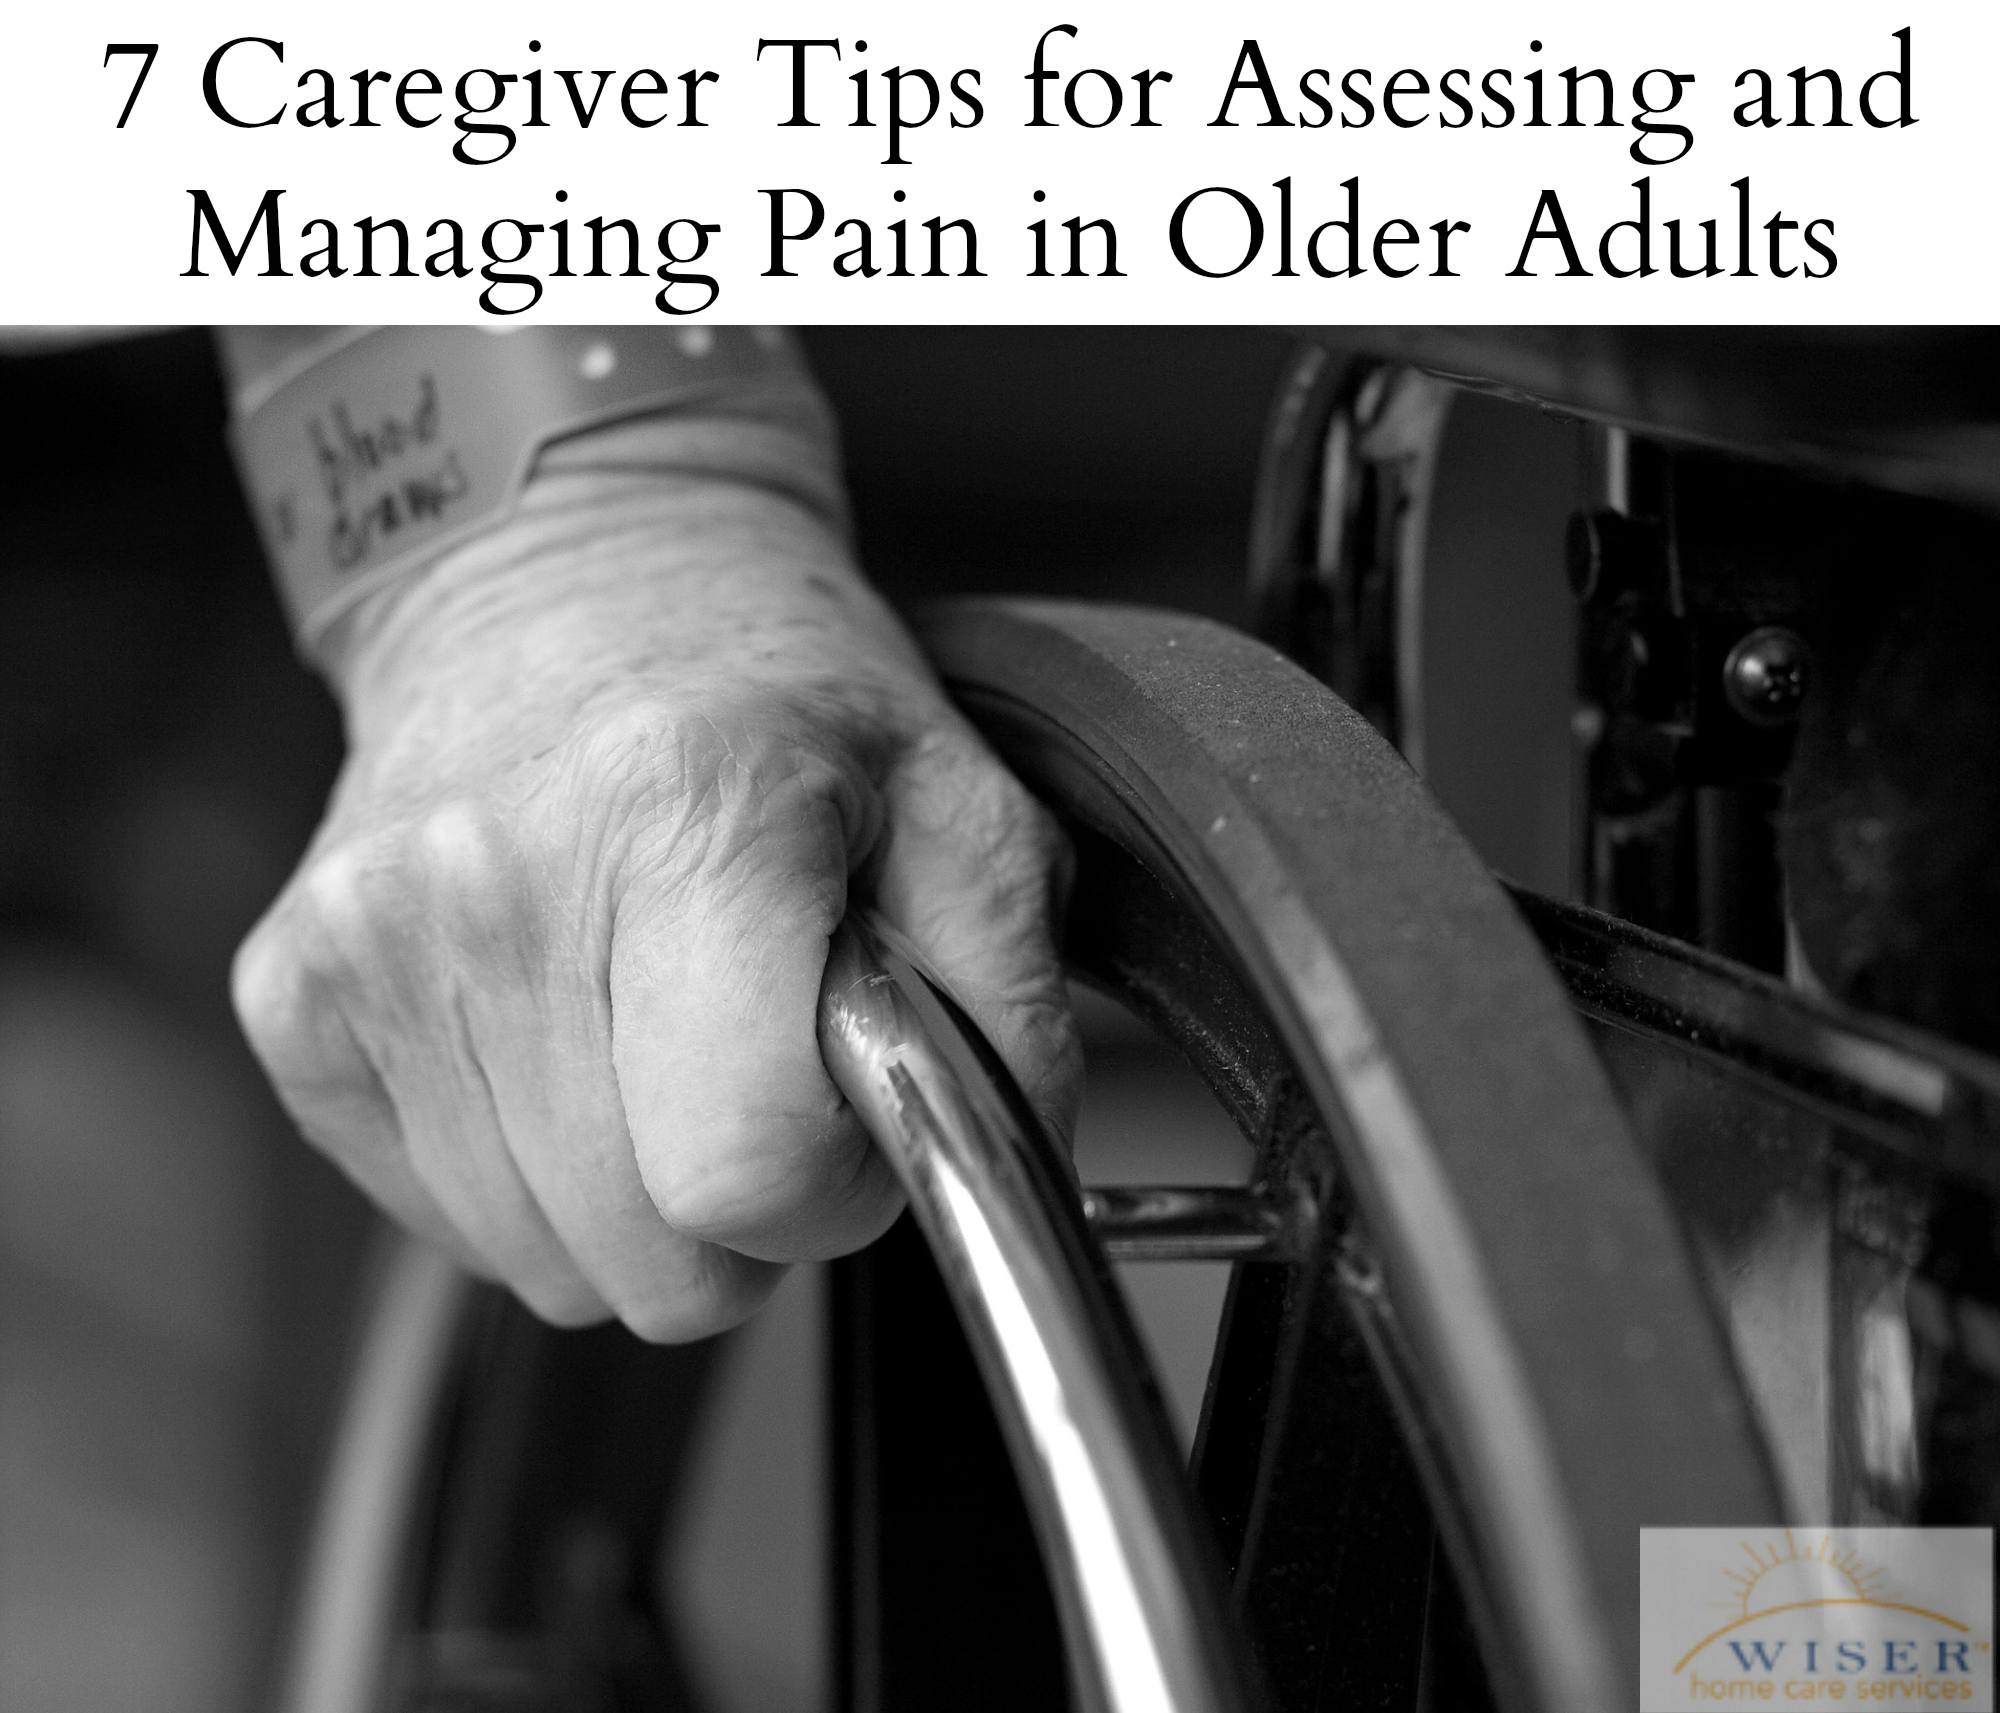 Often assessing pain is one of the more challenging tasks for caregivers. Our blog provides several tips caregivers can utilize to reduce pain for clients.